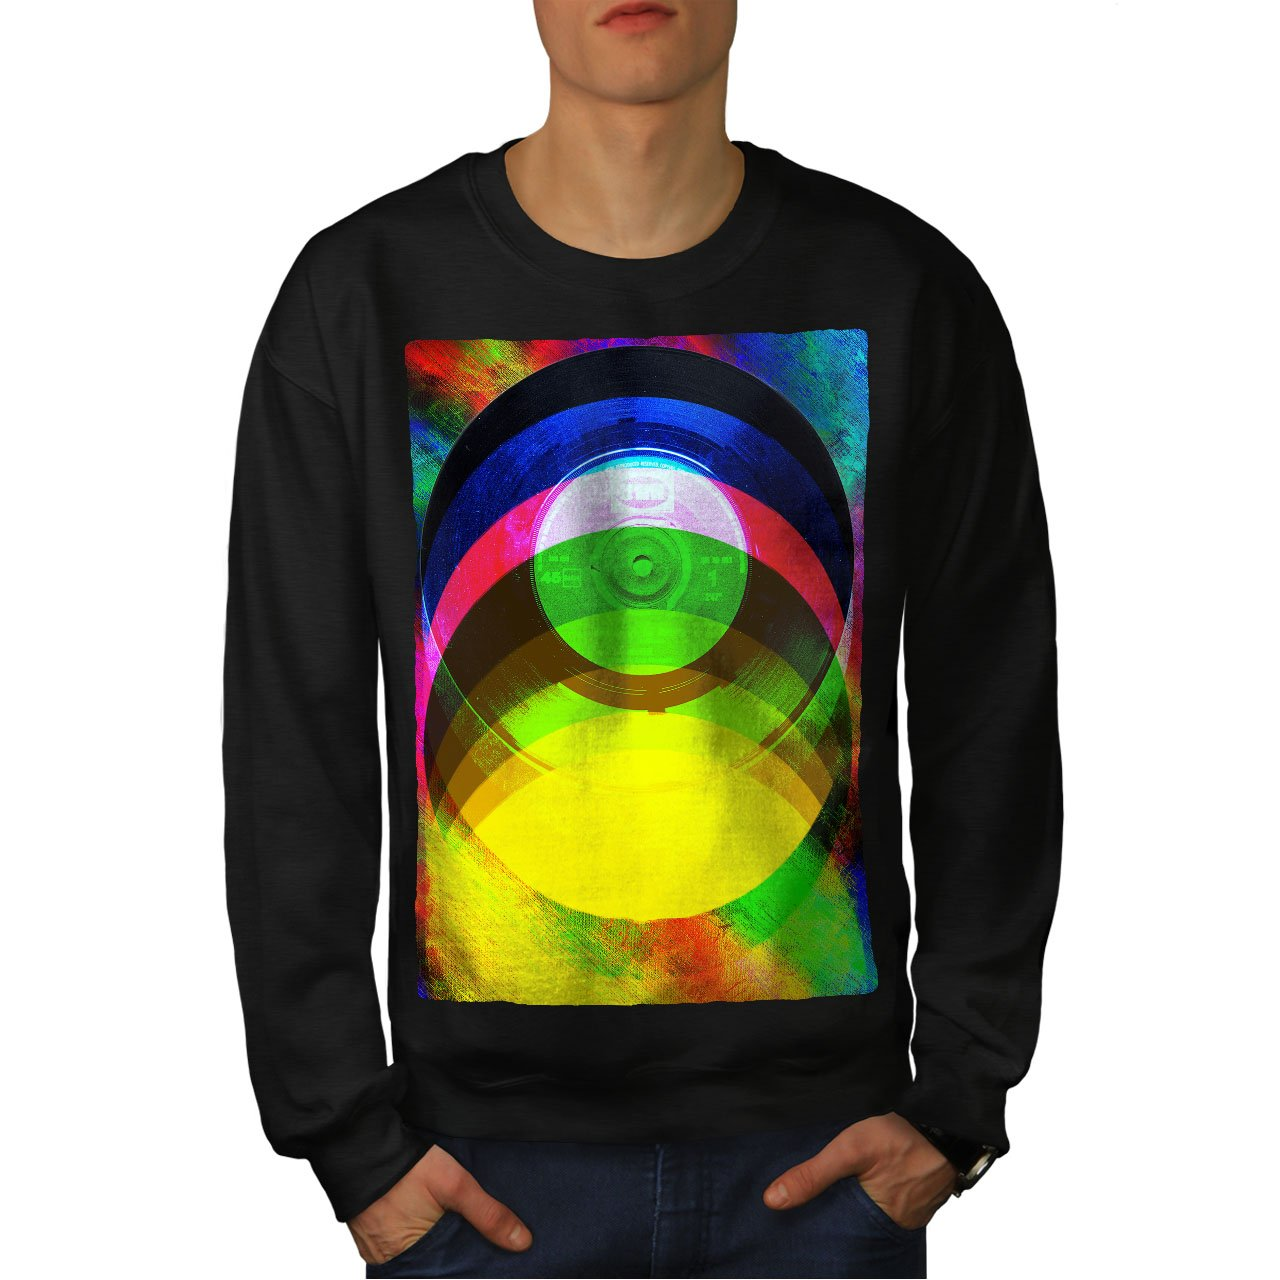 wellcoda Vinyl Colored Player Mens Sweatshirt Music Casual Jumper